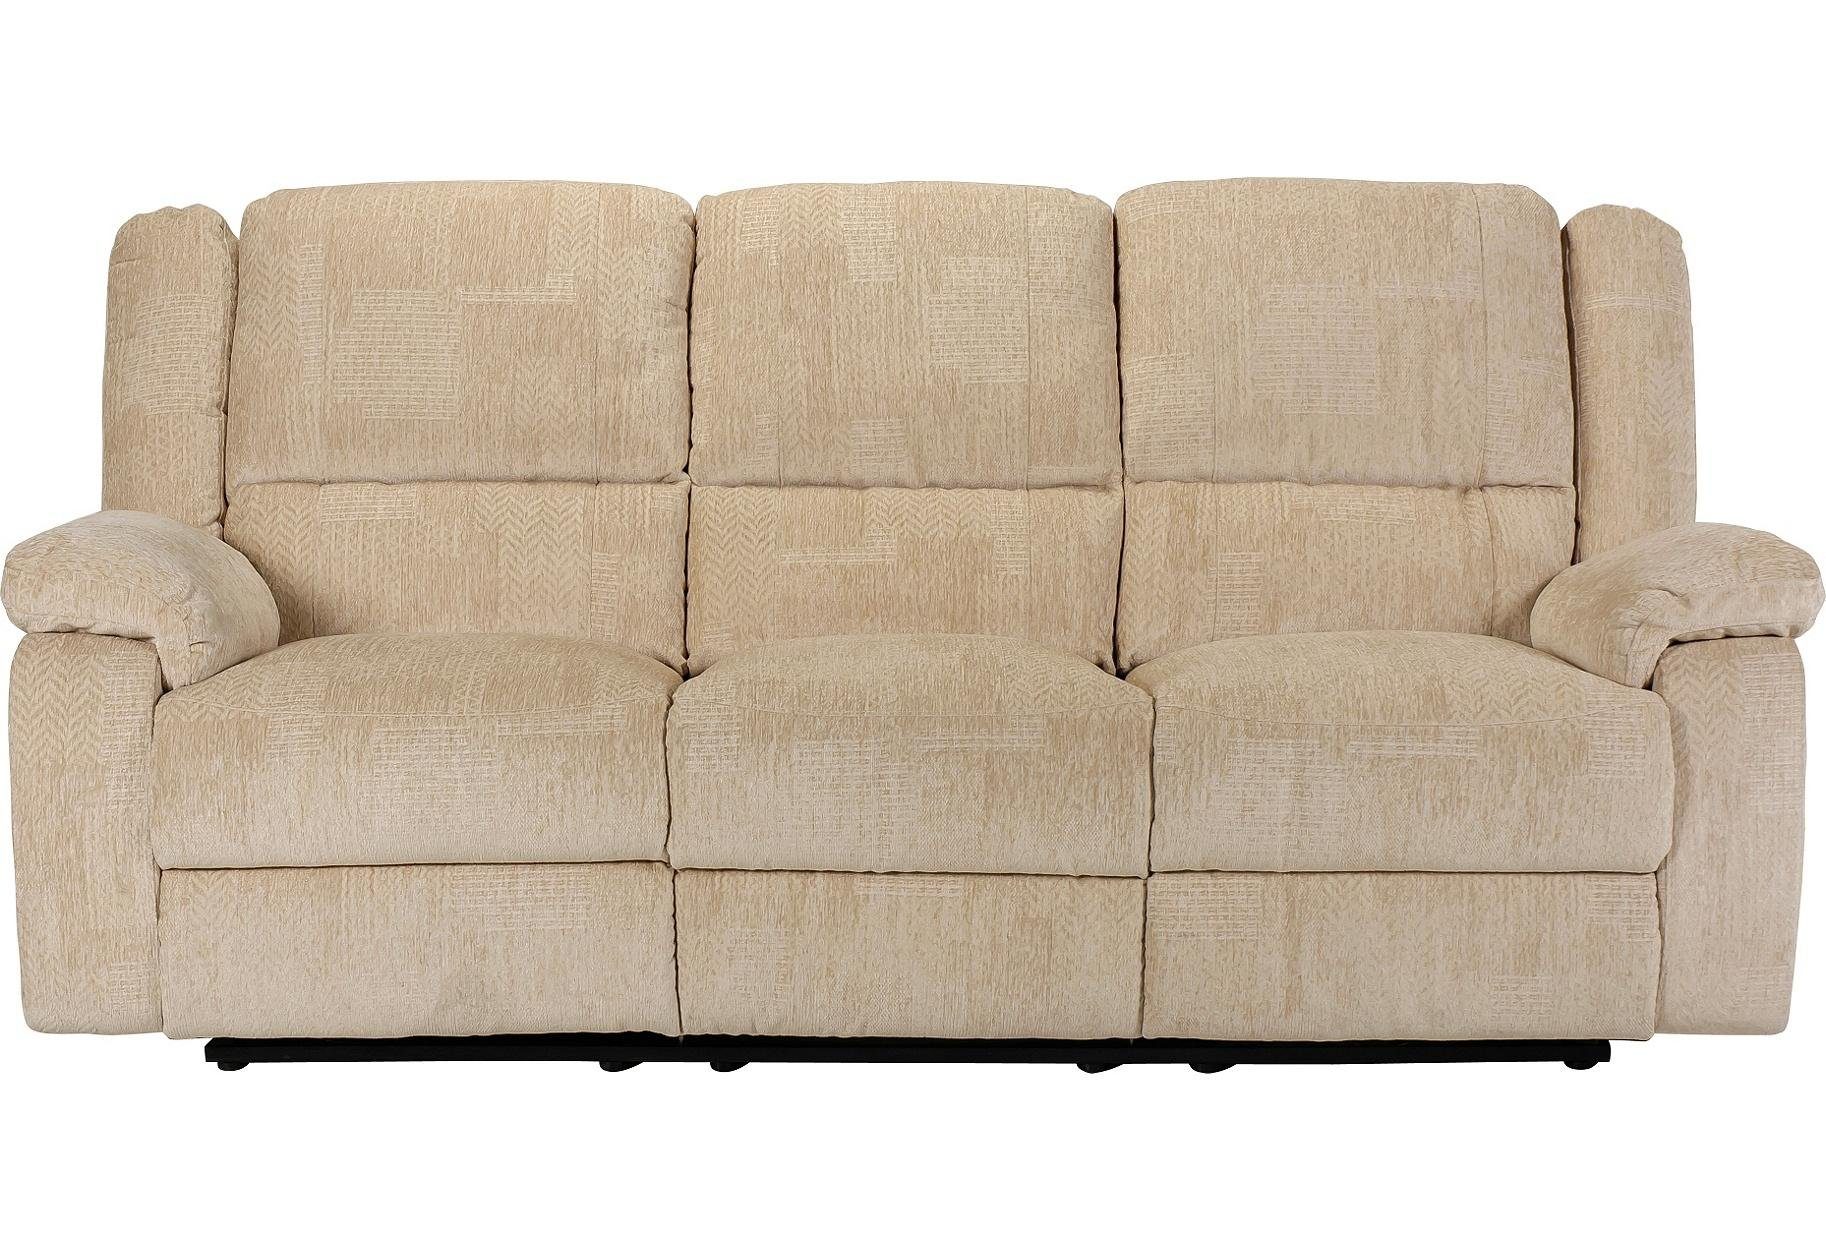 Collection Shelly 3 Seater Manual Recliner Sofa - Natural  sc 1 st  Argos & Results for recliner sofas islam-shia.org